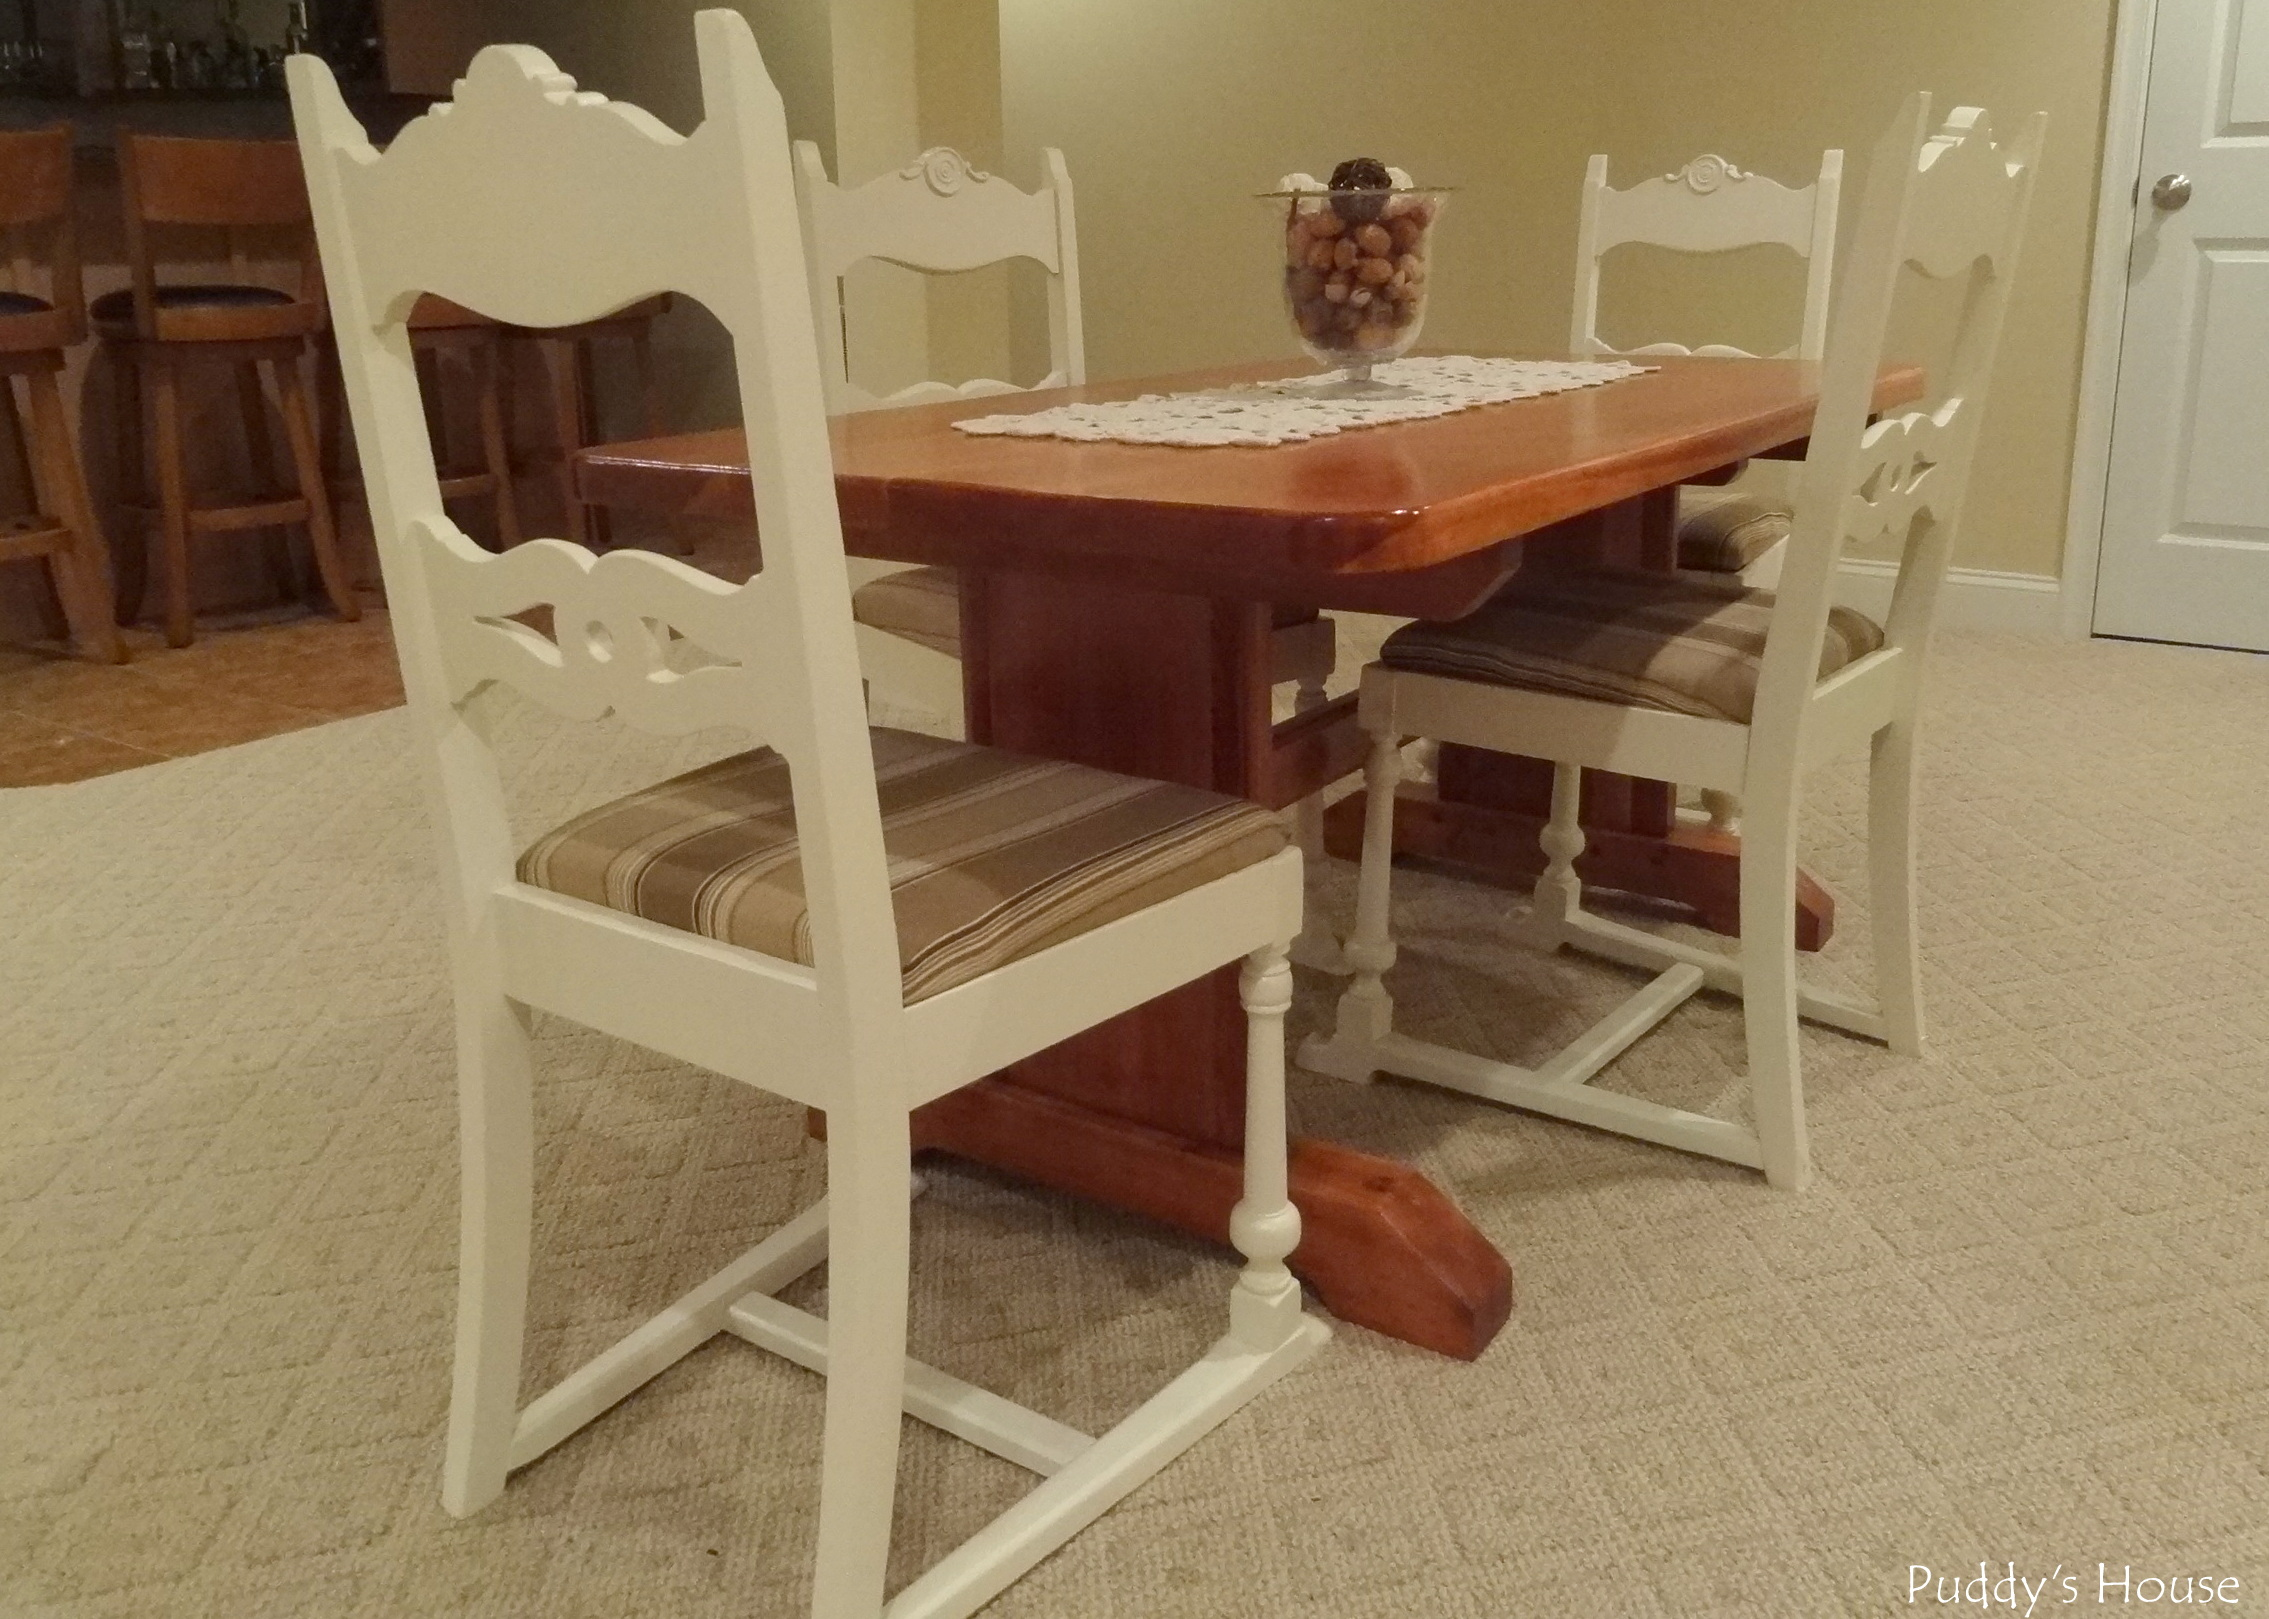 Basement - Stained Table Painted and Reupholstered Chairs